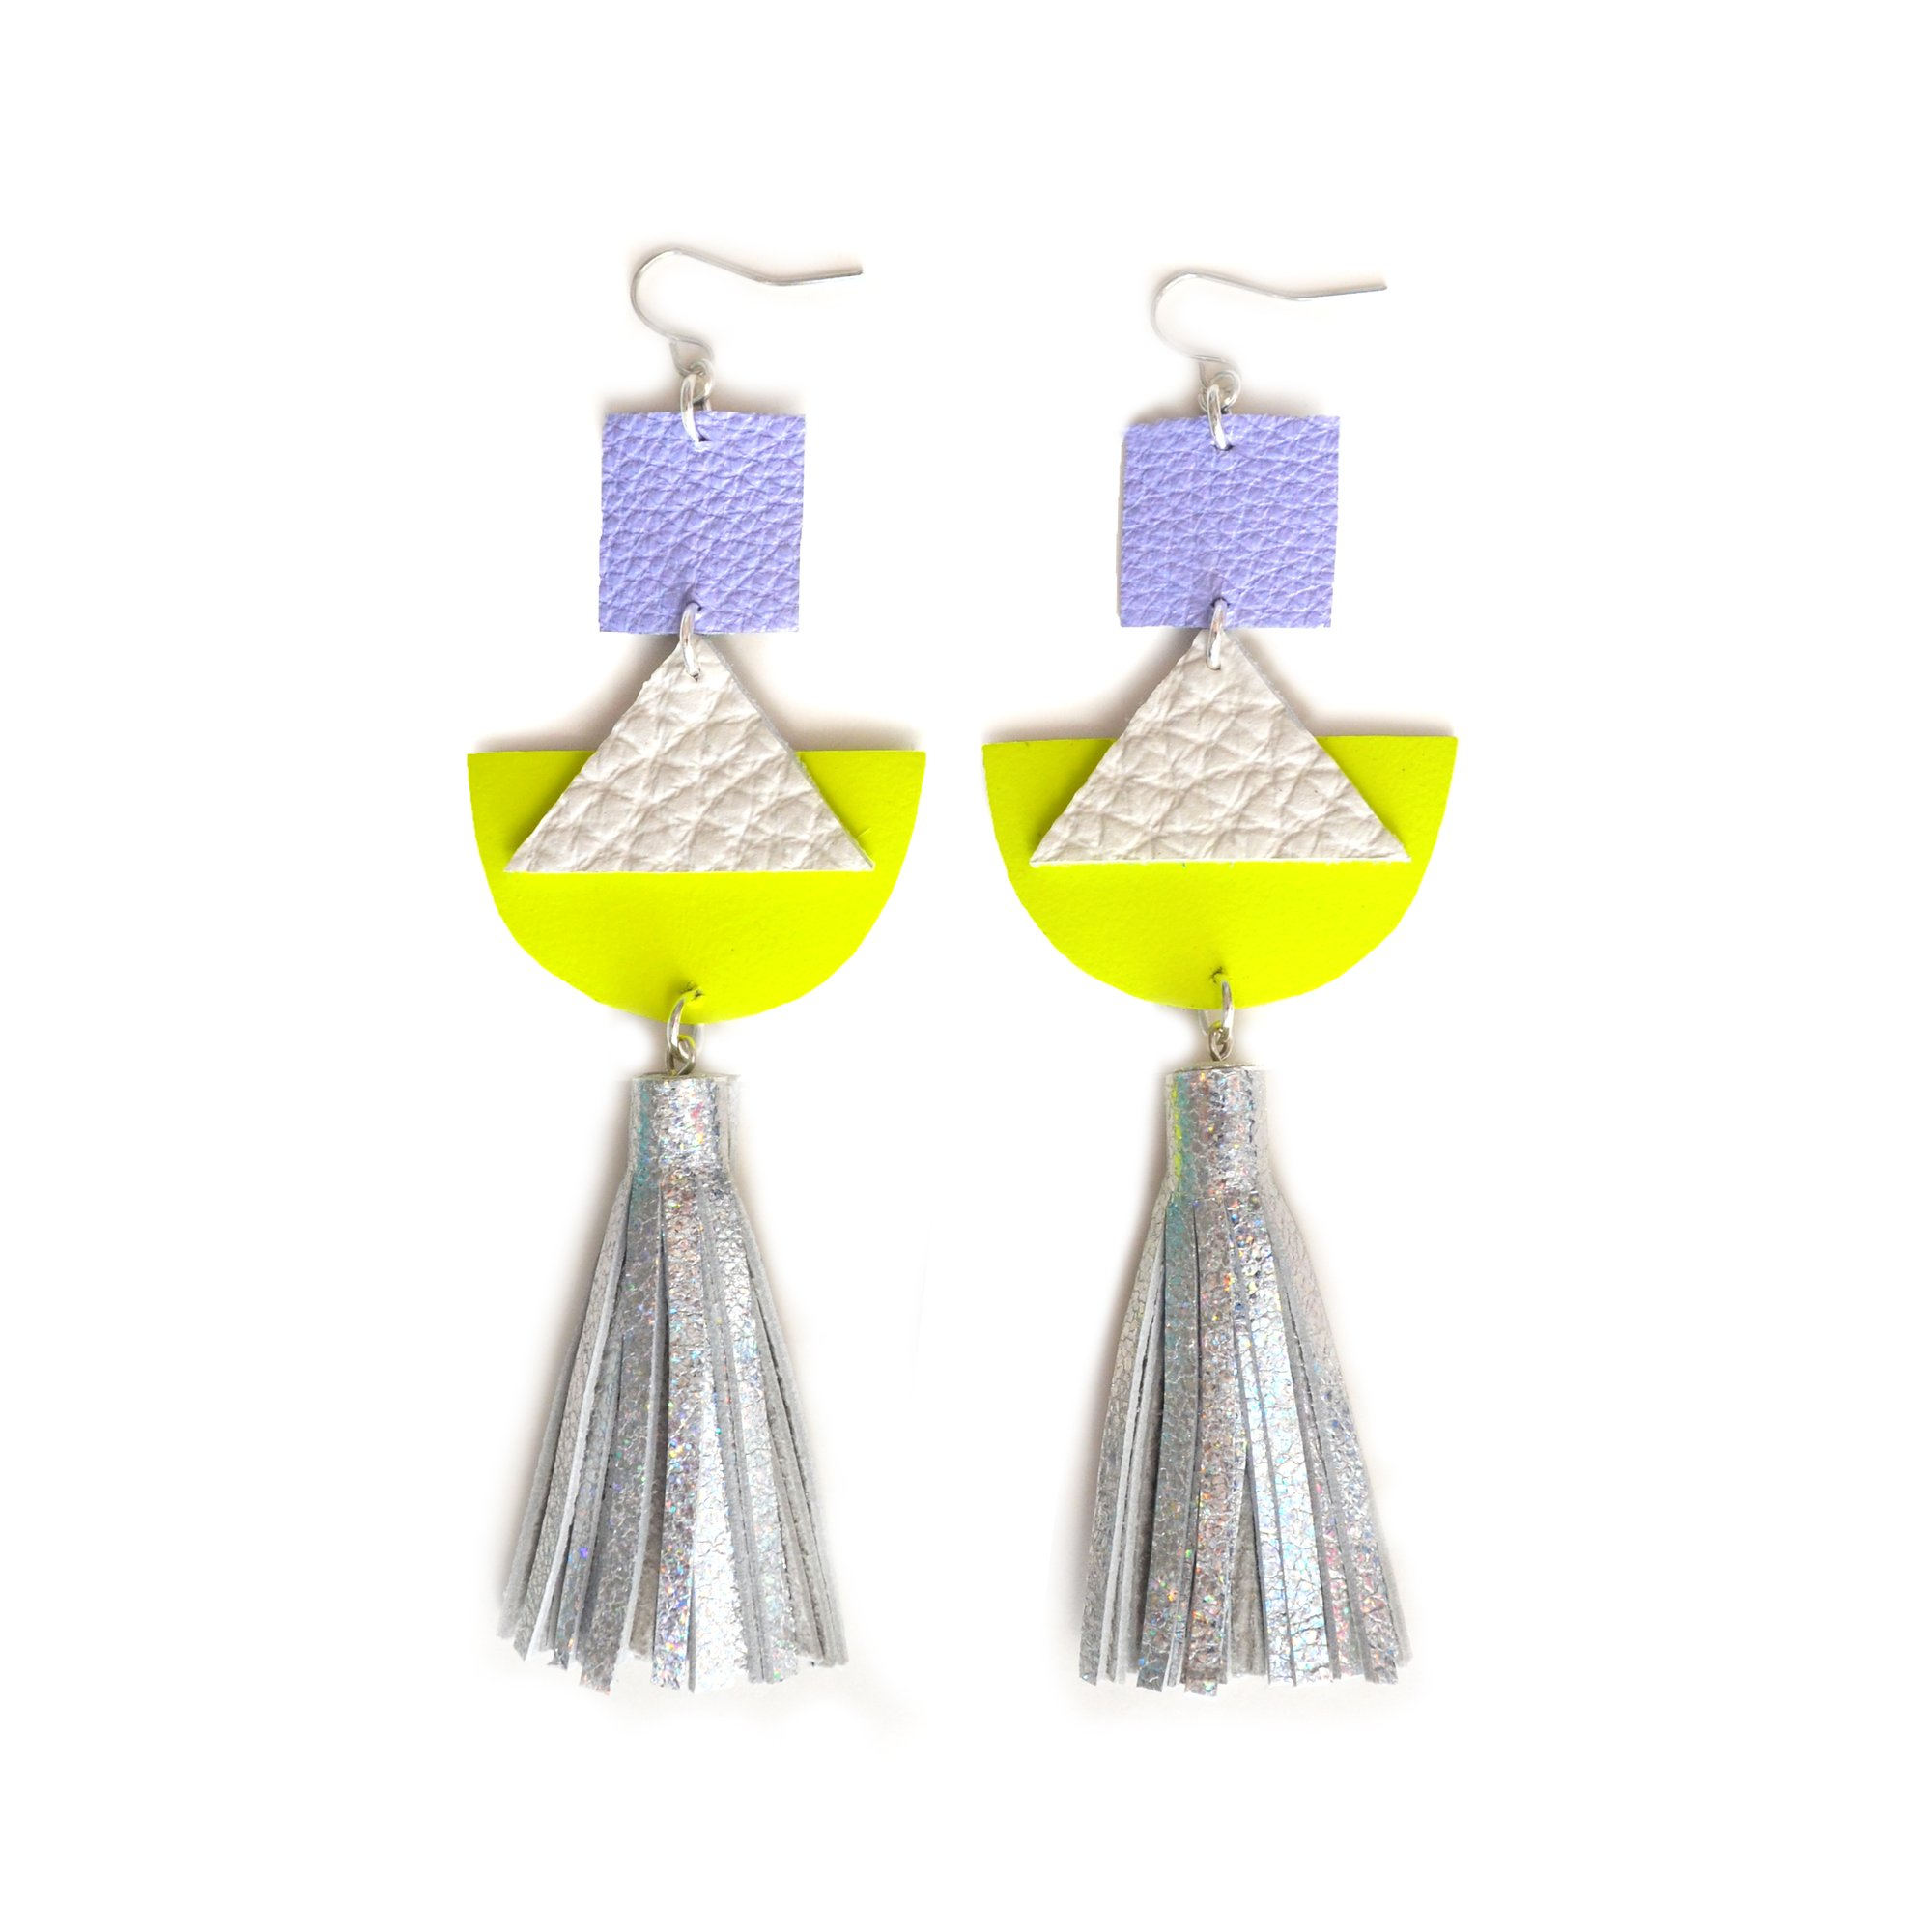 geometric me illuminated three sharon llc earrings by hanging herrick products